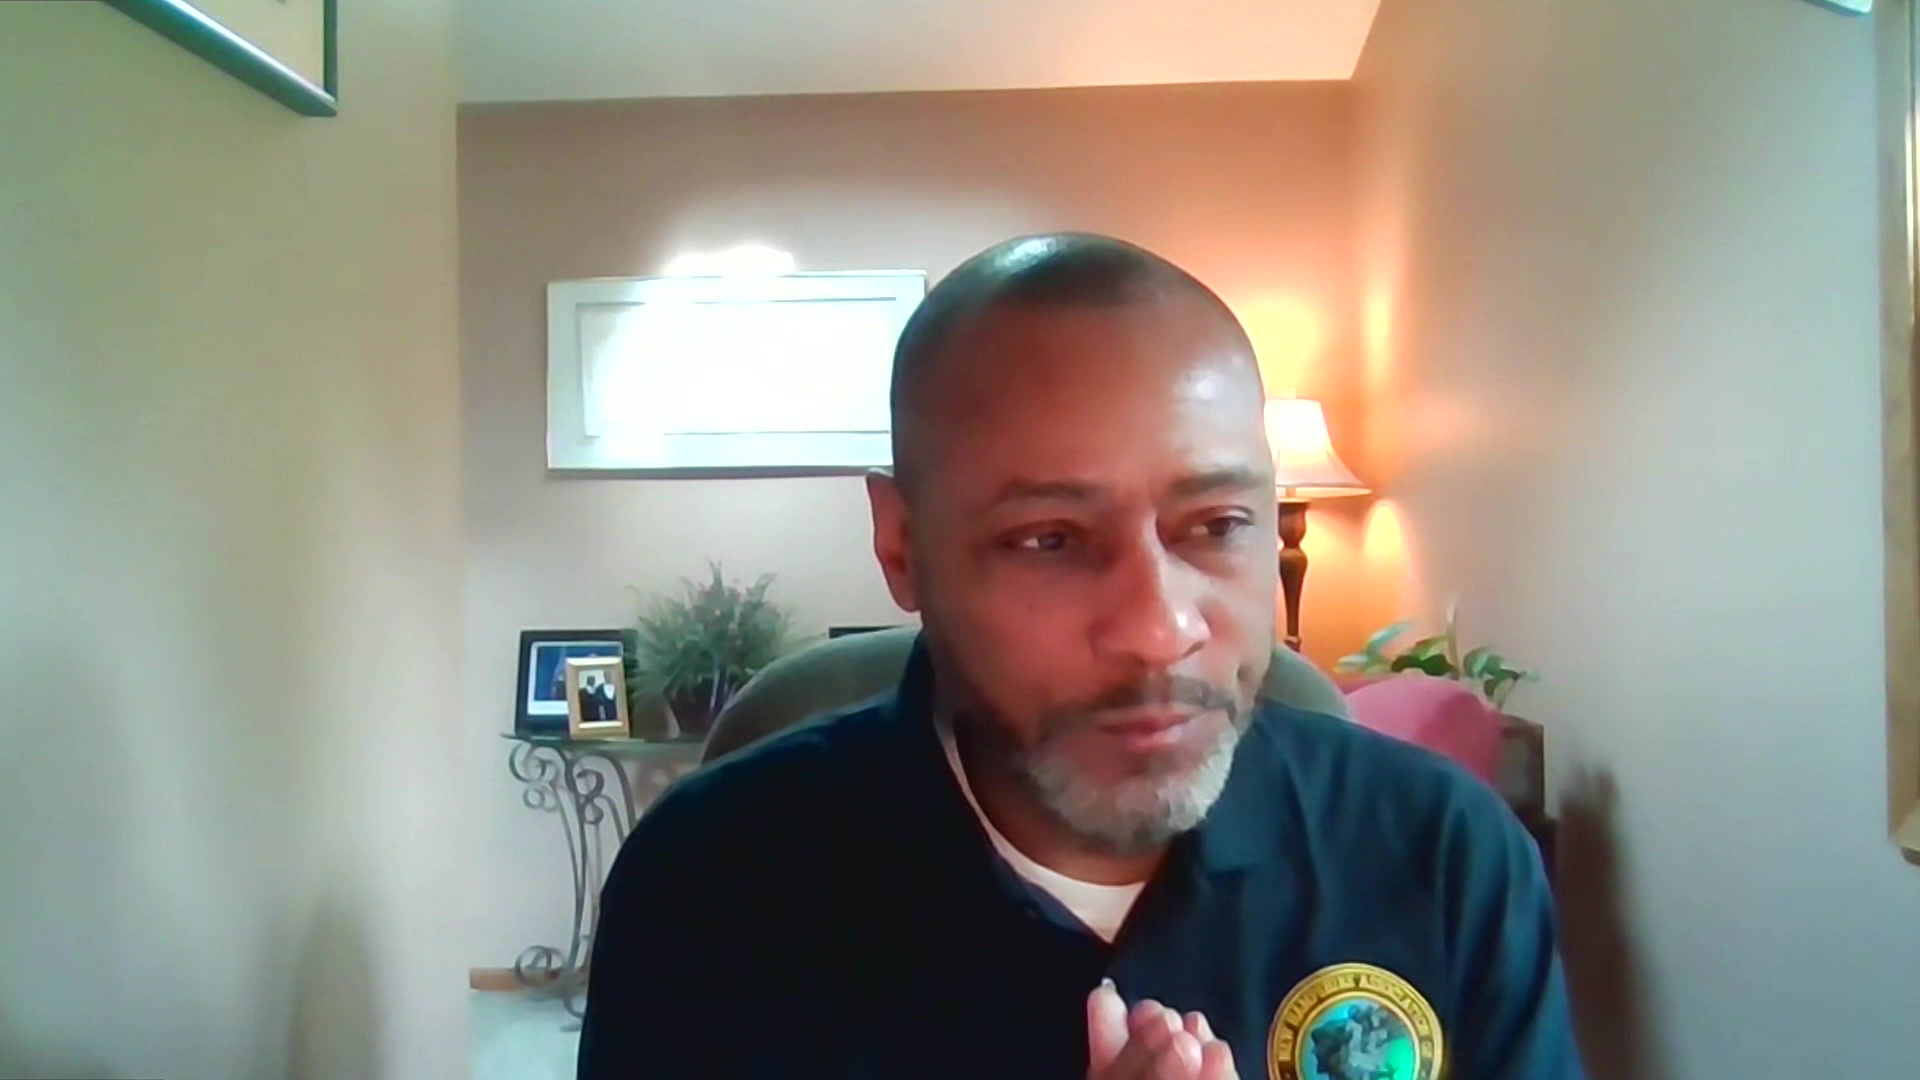 Noble Wray sits in a room while participating in a web conference interview.